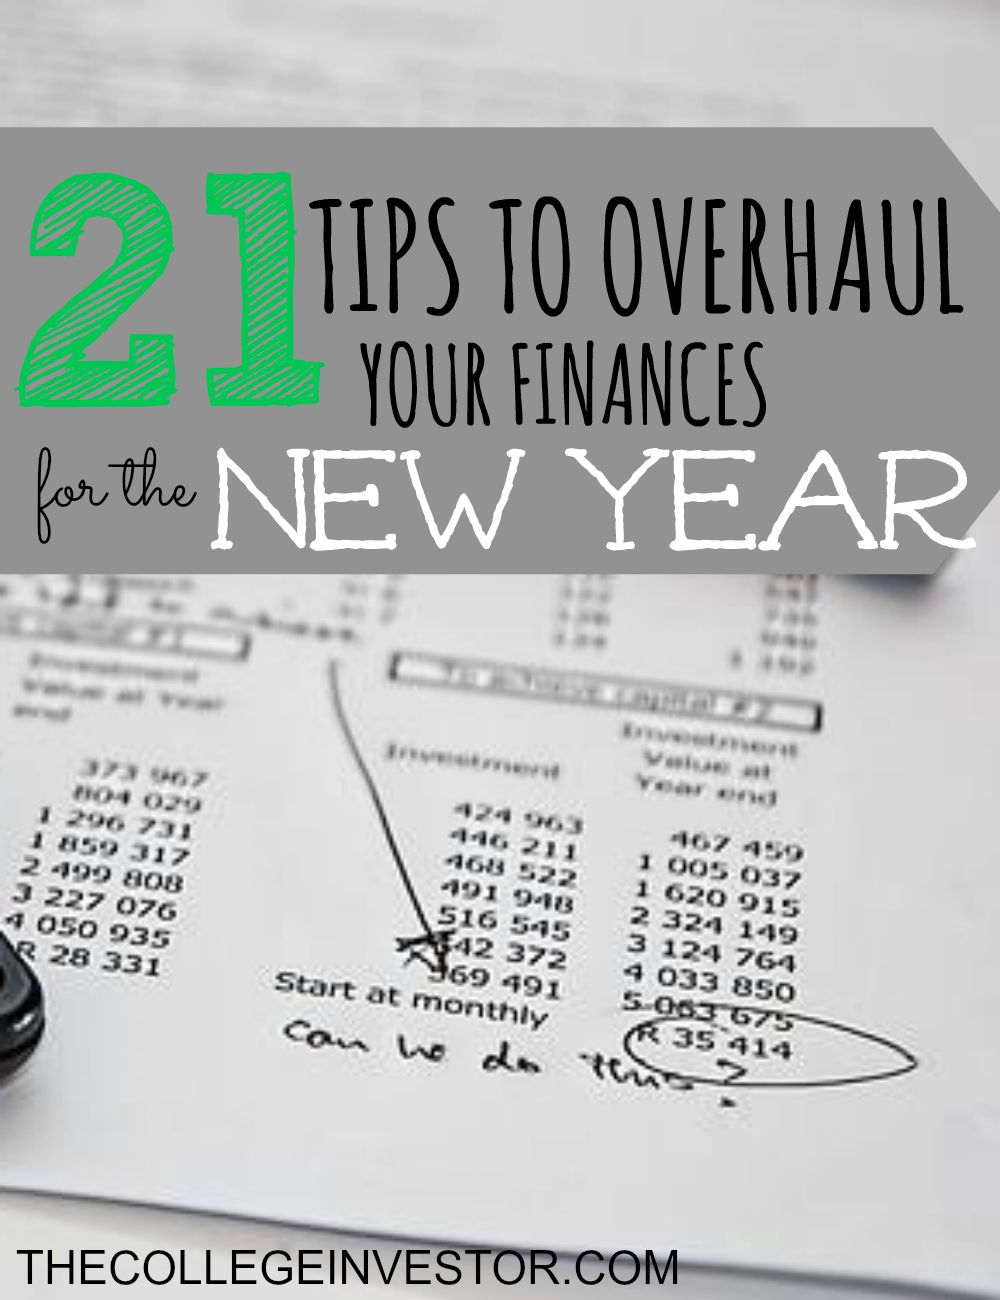 21 Tips to Overhaul Your Finances for the New Year